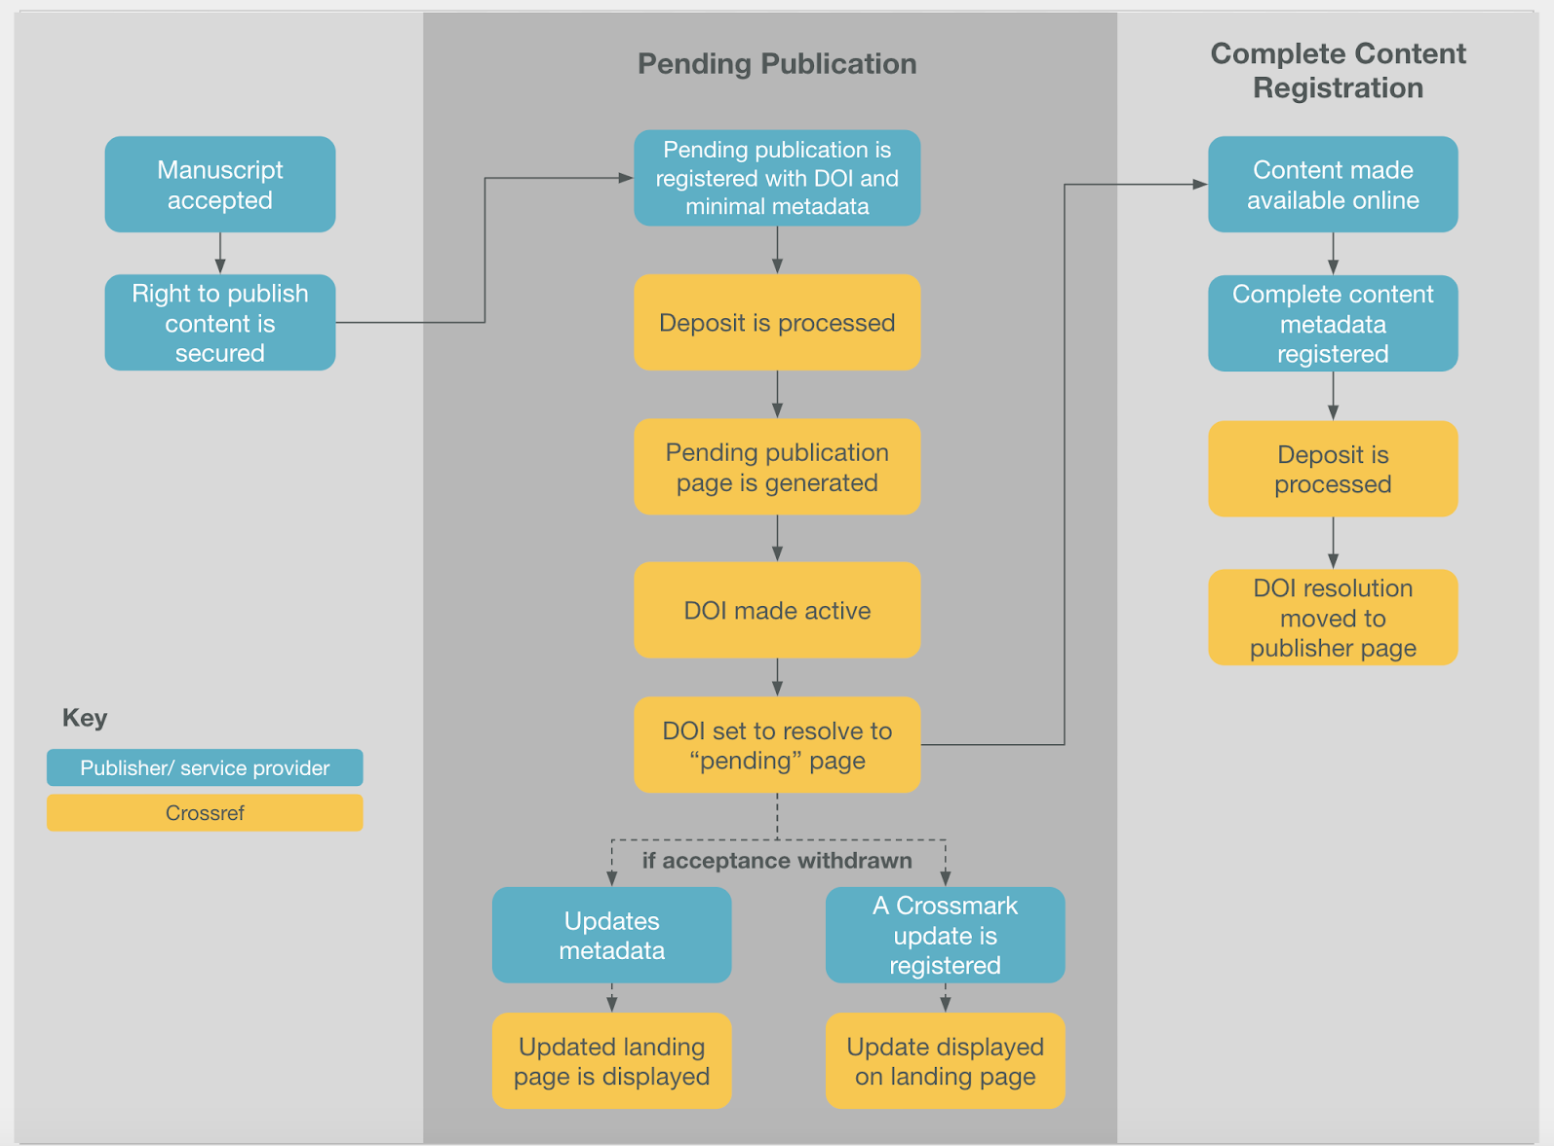 Pending Publication workflow